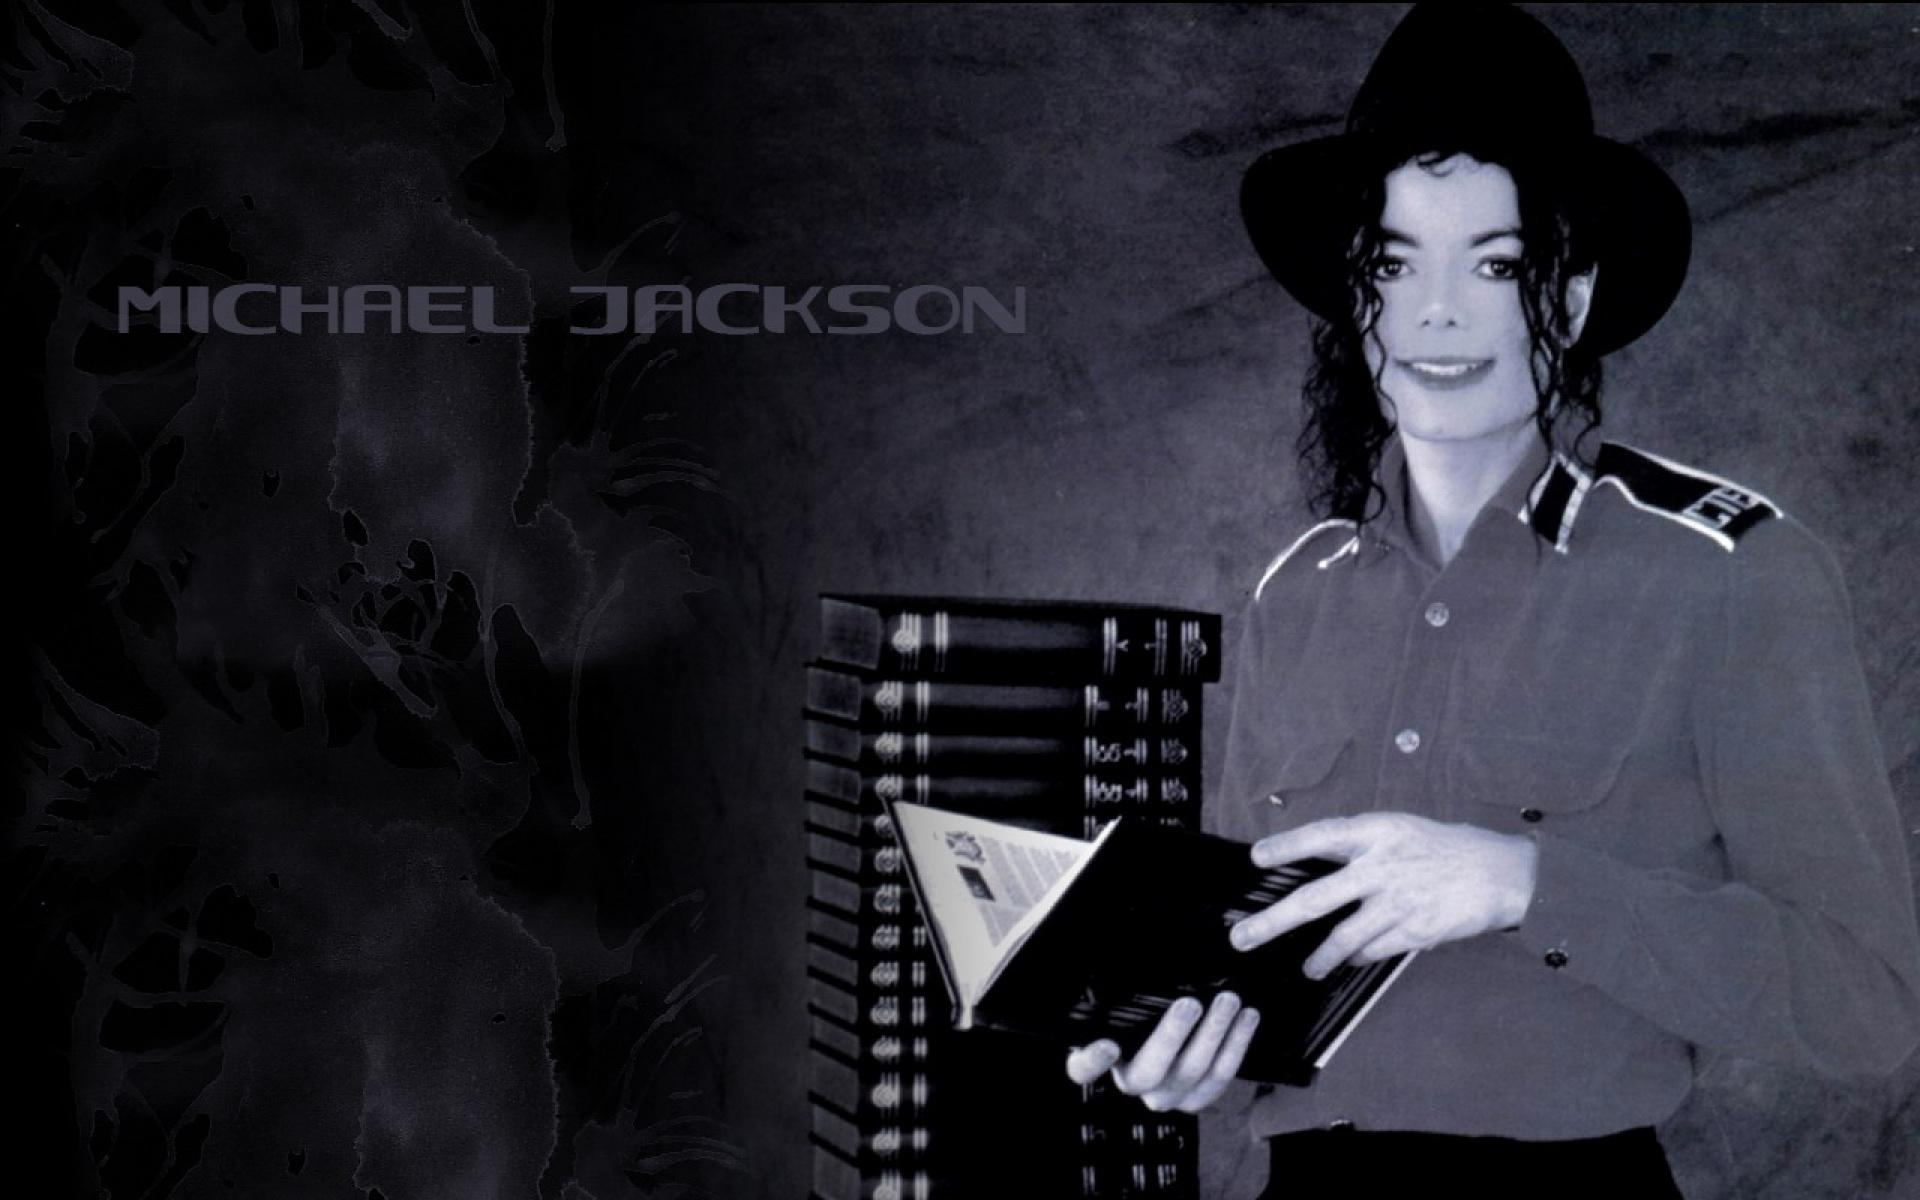 Michael jackson Singer wallpaper